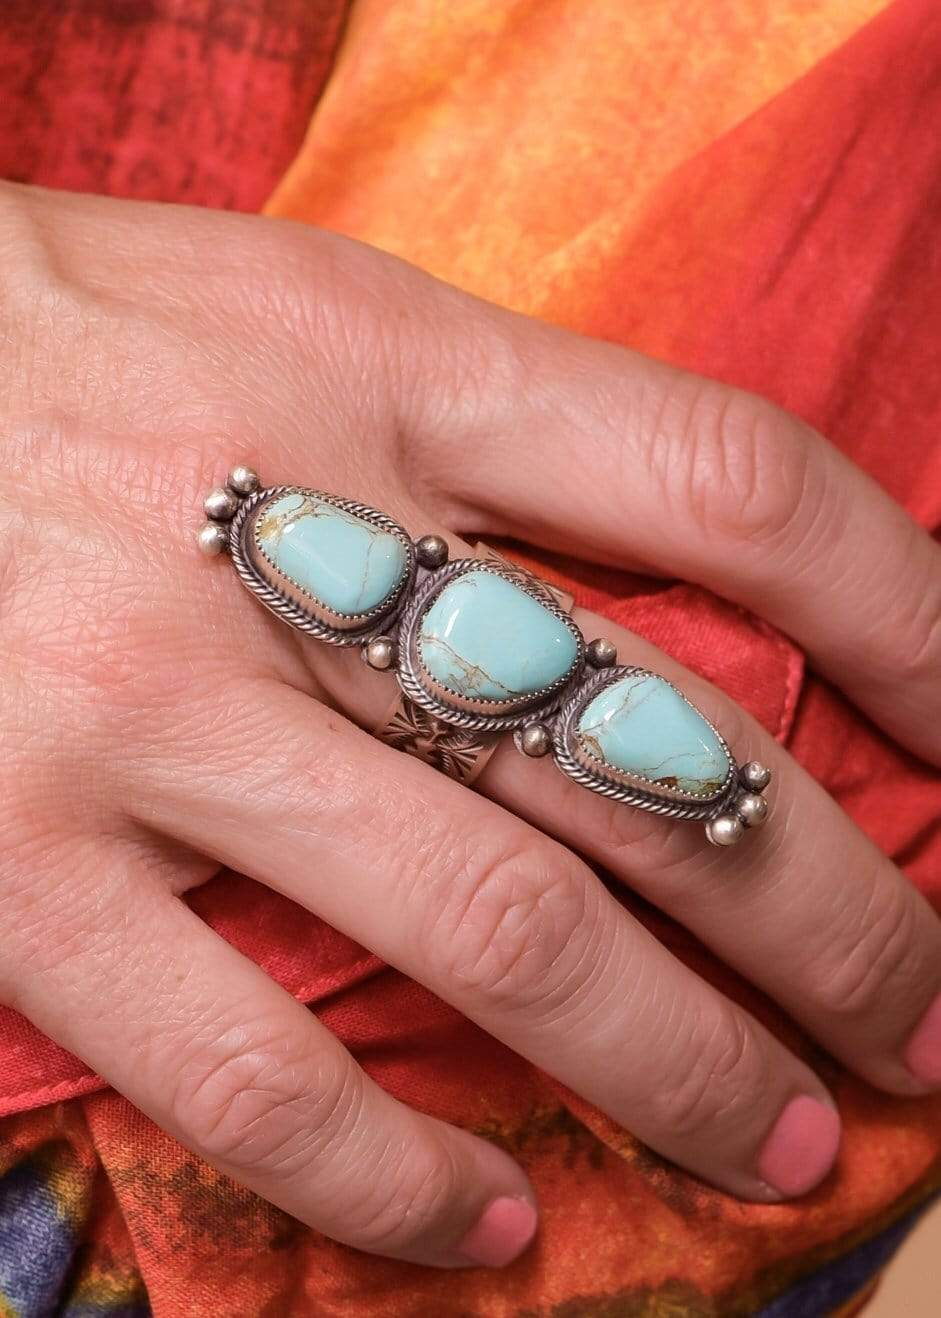 Accessorize In Style Sterling Rings Turquoise 3 Stone Ring With Ball Detail On Ends - Size 9